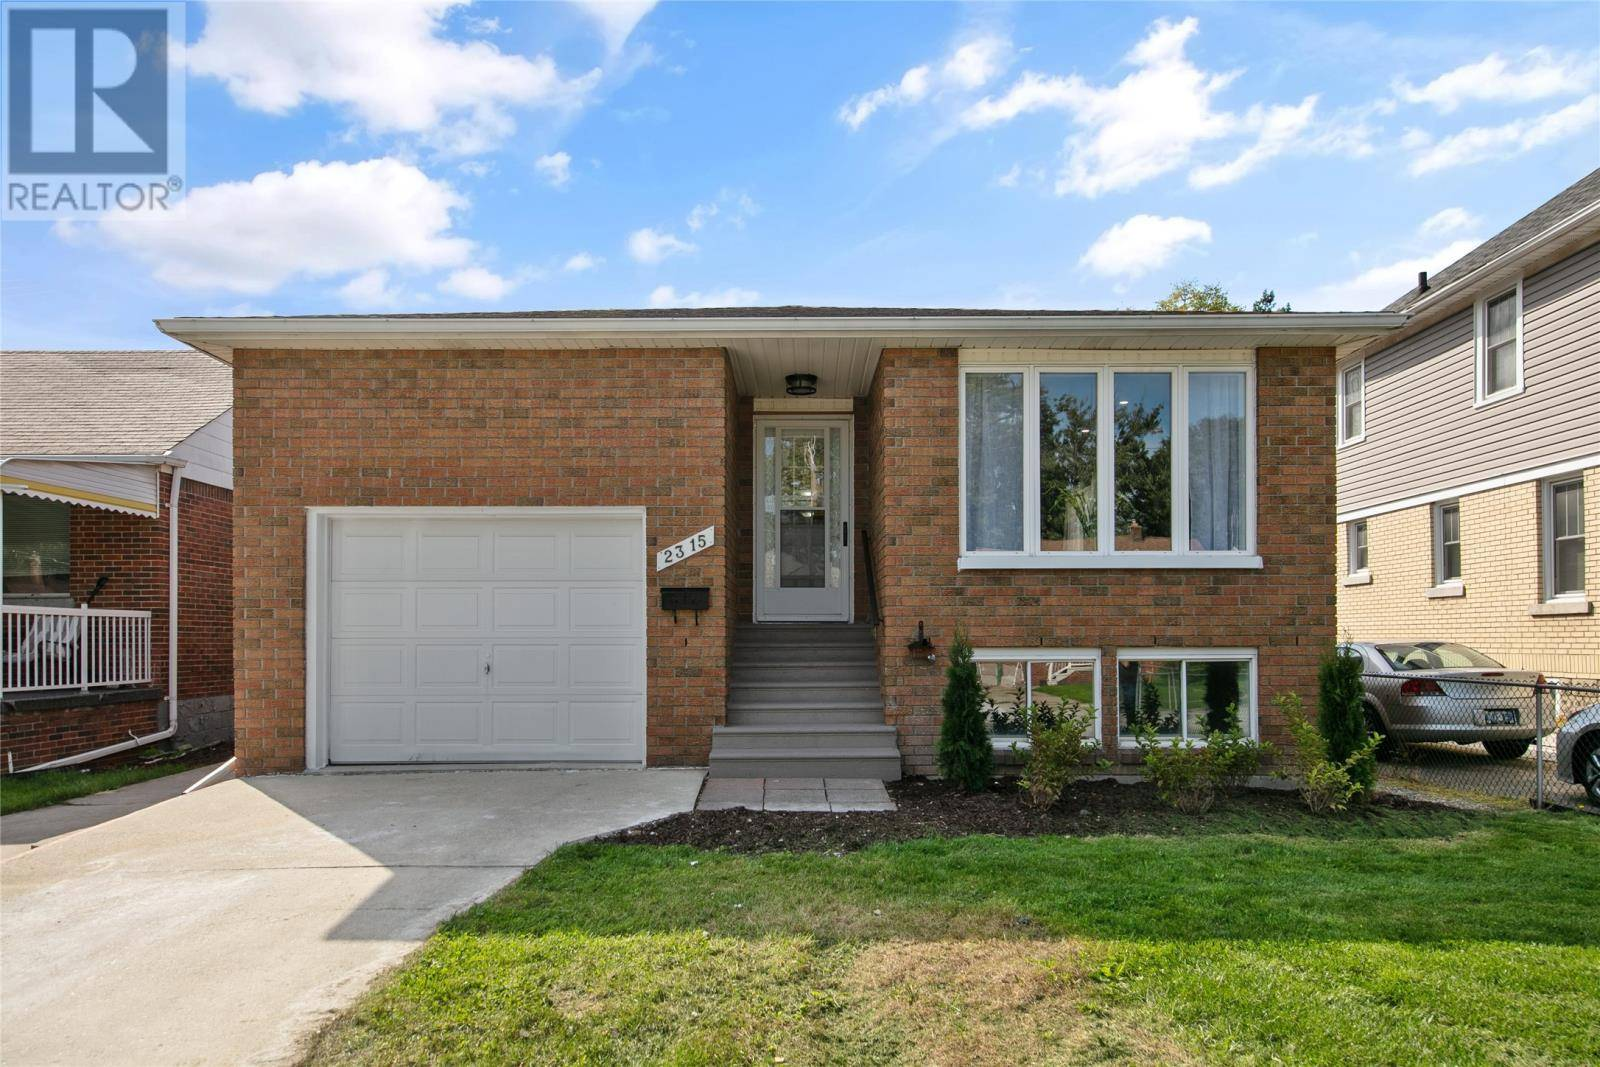 House for sale at 2315 Parkwood  Windsor Ontario - MLS: 19026656